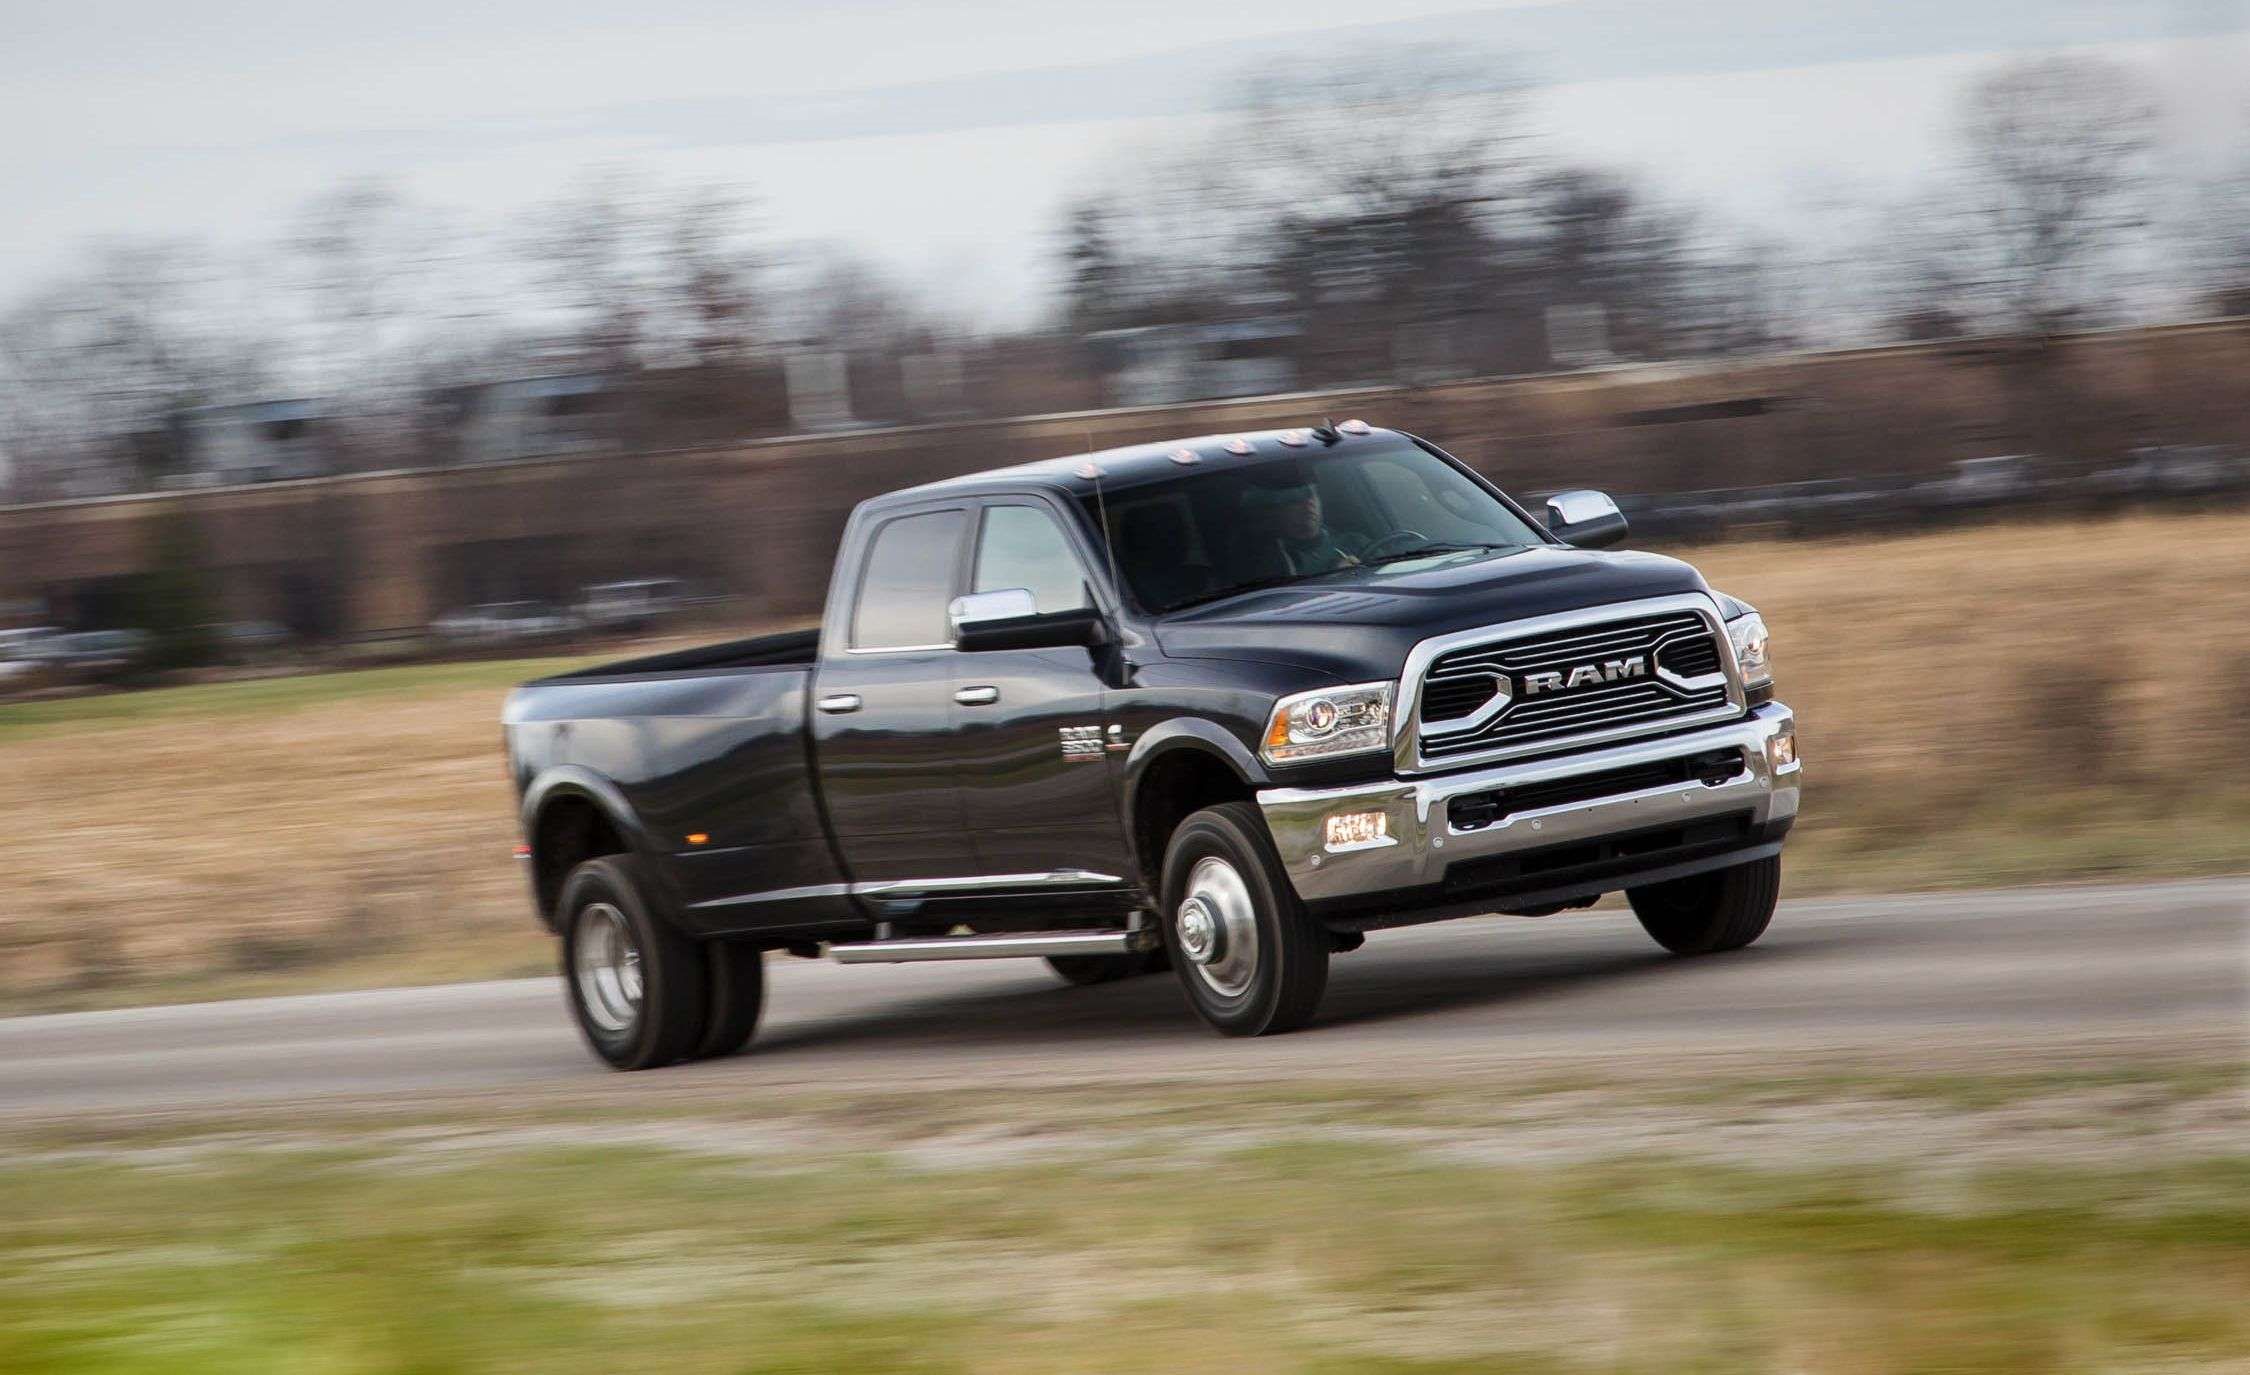 2019 Ram 3500 Reviews | Ram 3500 Price, Photos, and Specs | Car and Driver